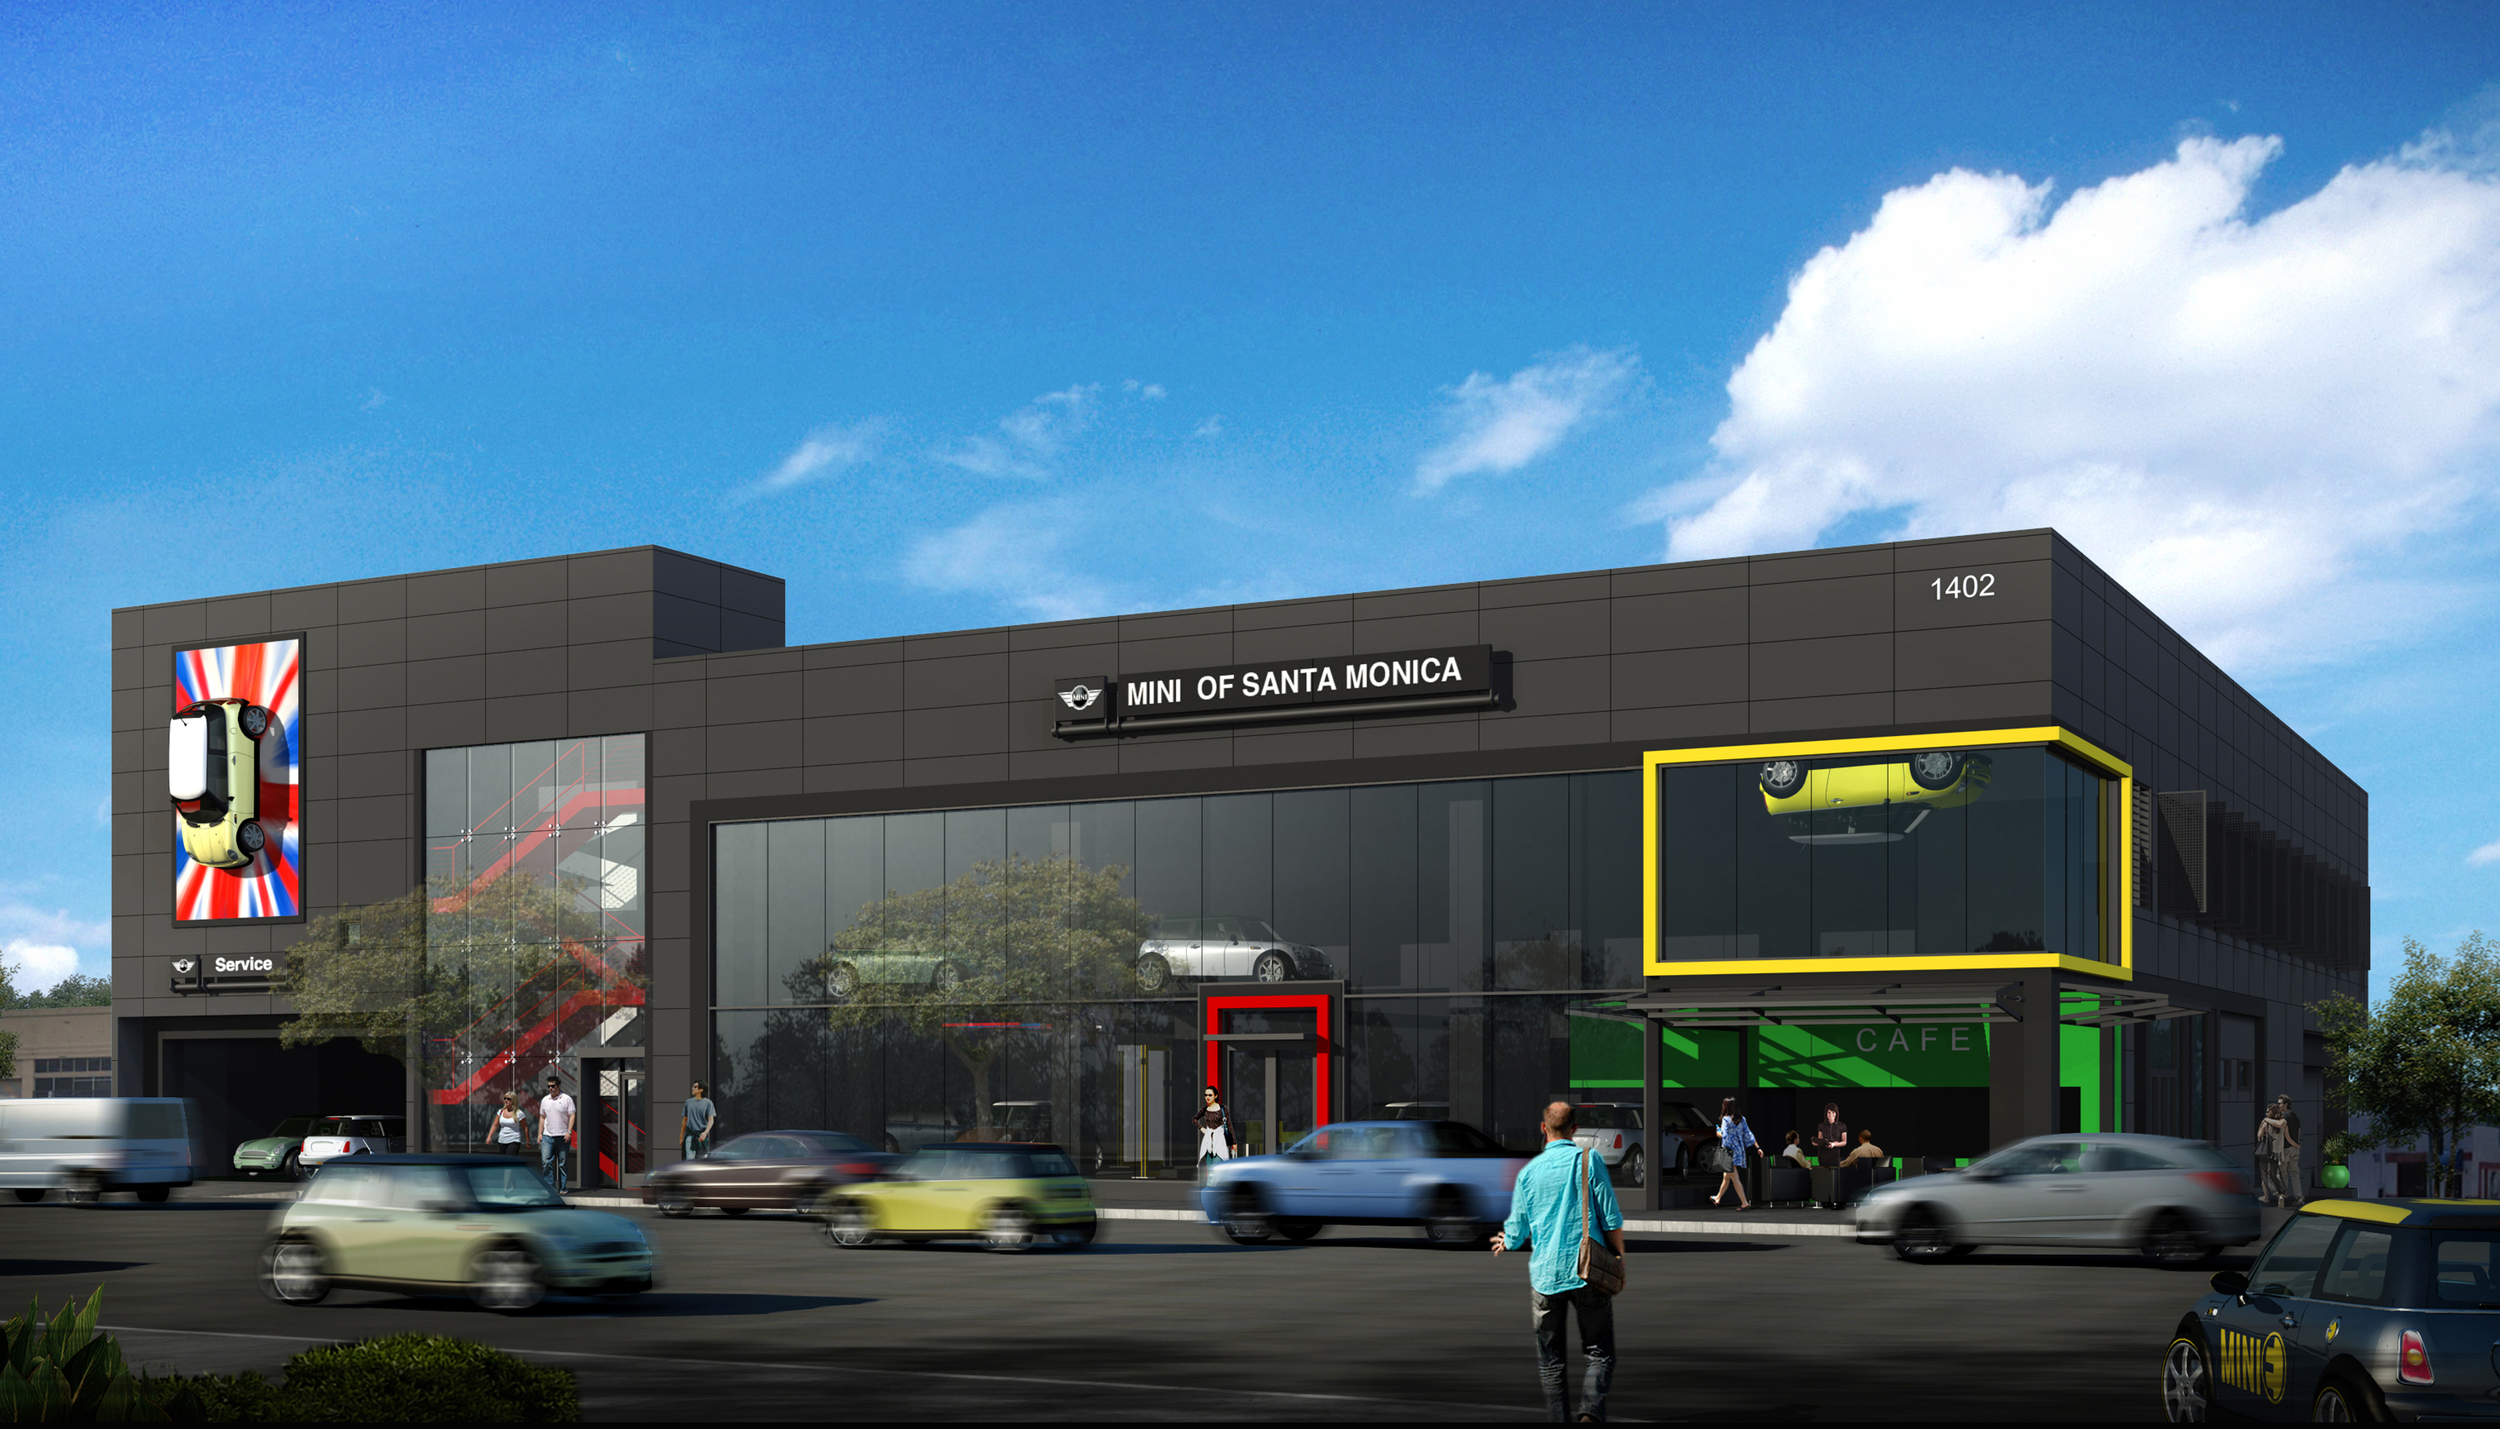 MINI of Santa Monica, Targeting LEED® Platinum Certification